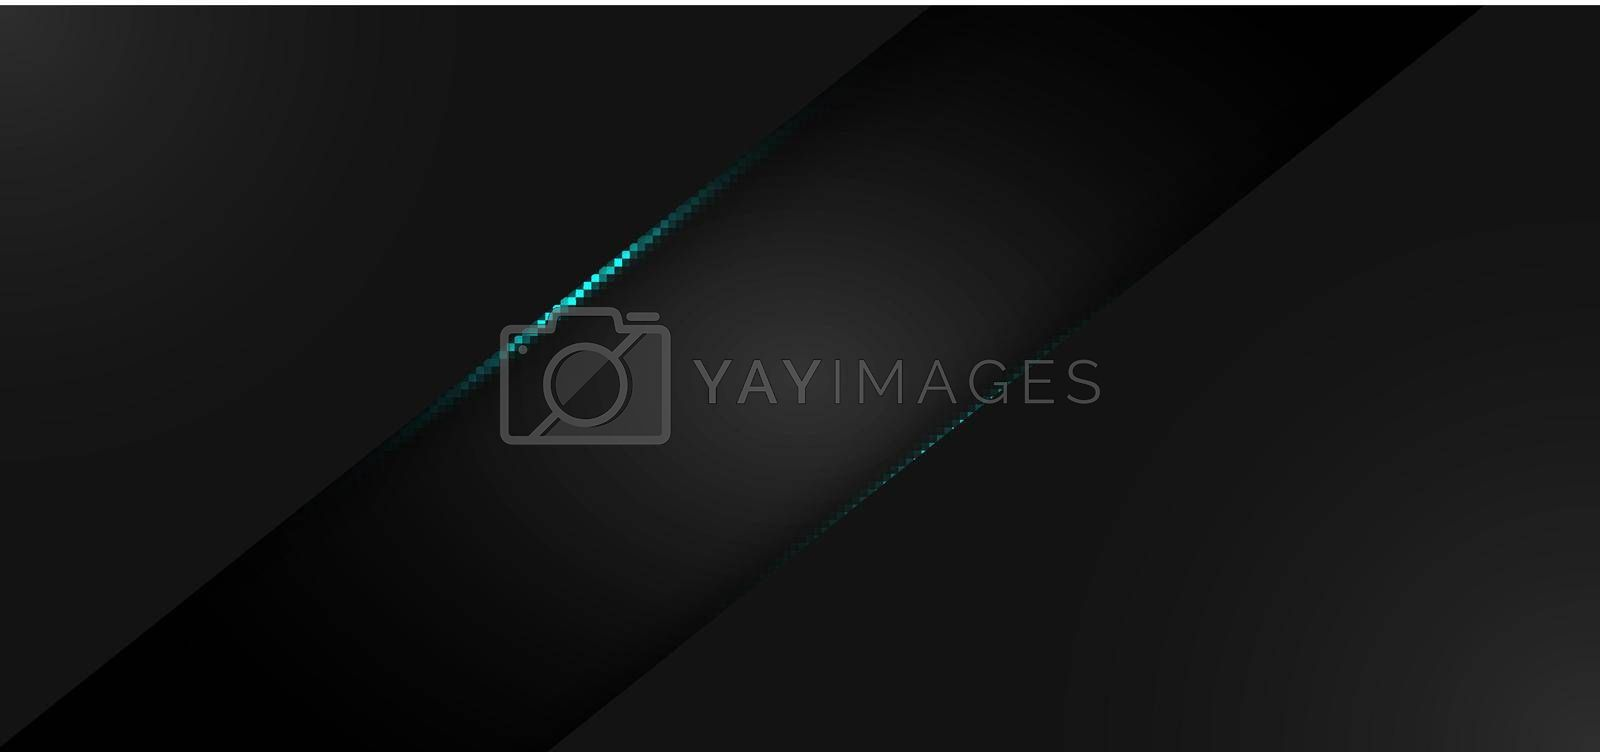 Abstract modern background black metallic frame with blue color light. Vector illustration